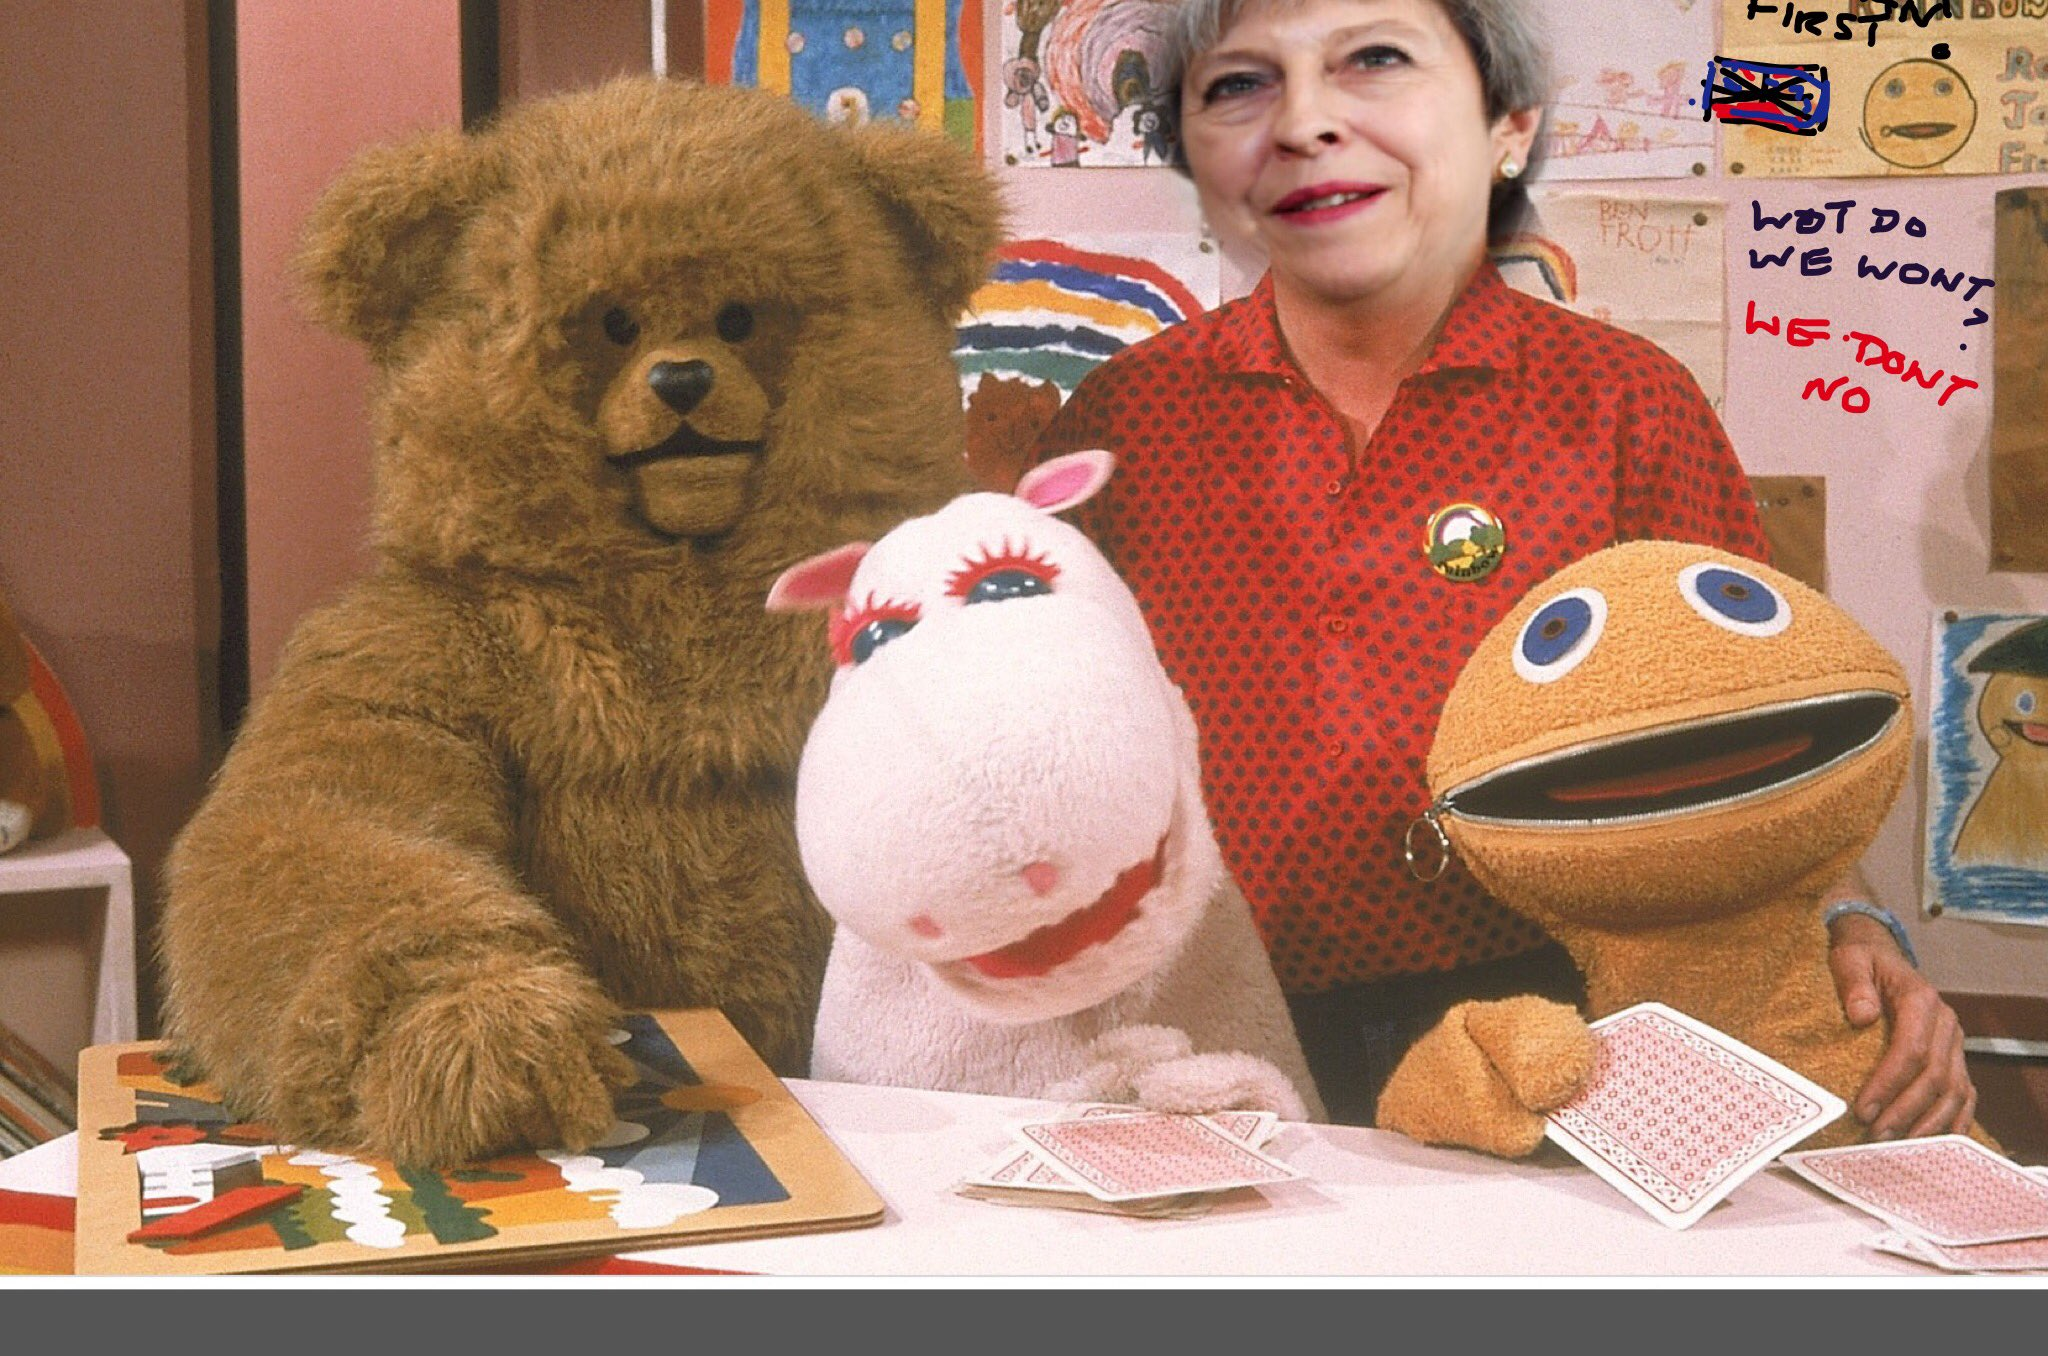 Theresa May upgrades the negotiating team fir the next round of talks. https://t.co/klciqNLrC4